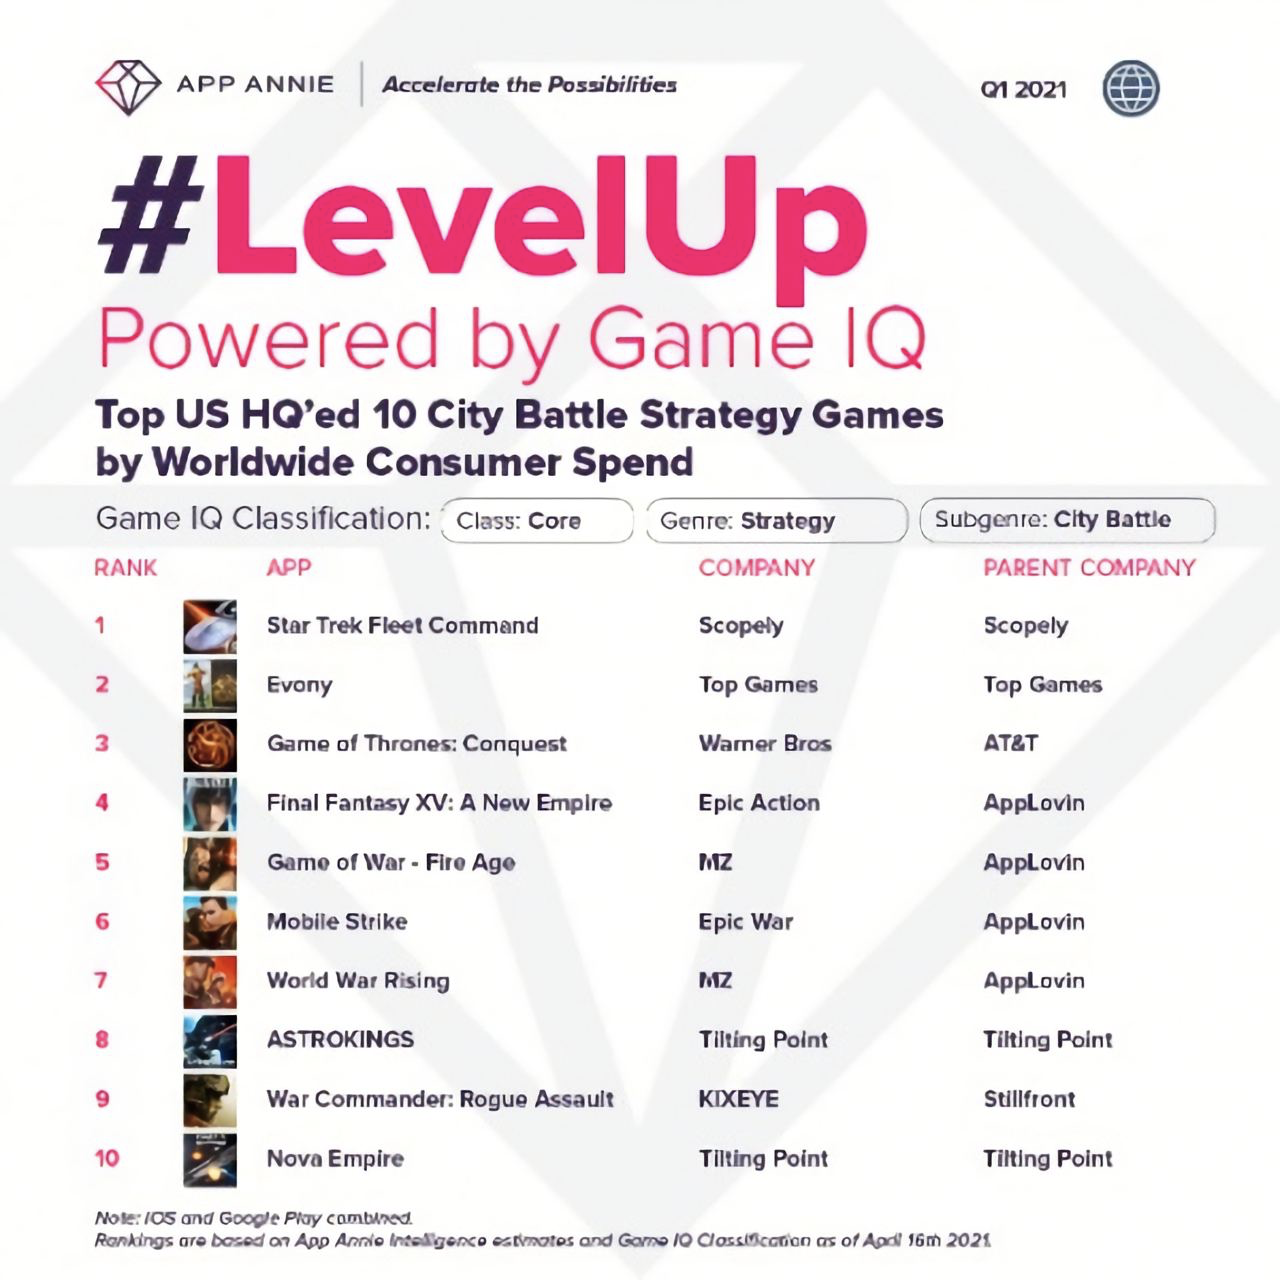 City battle strategy games by consumer spend